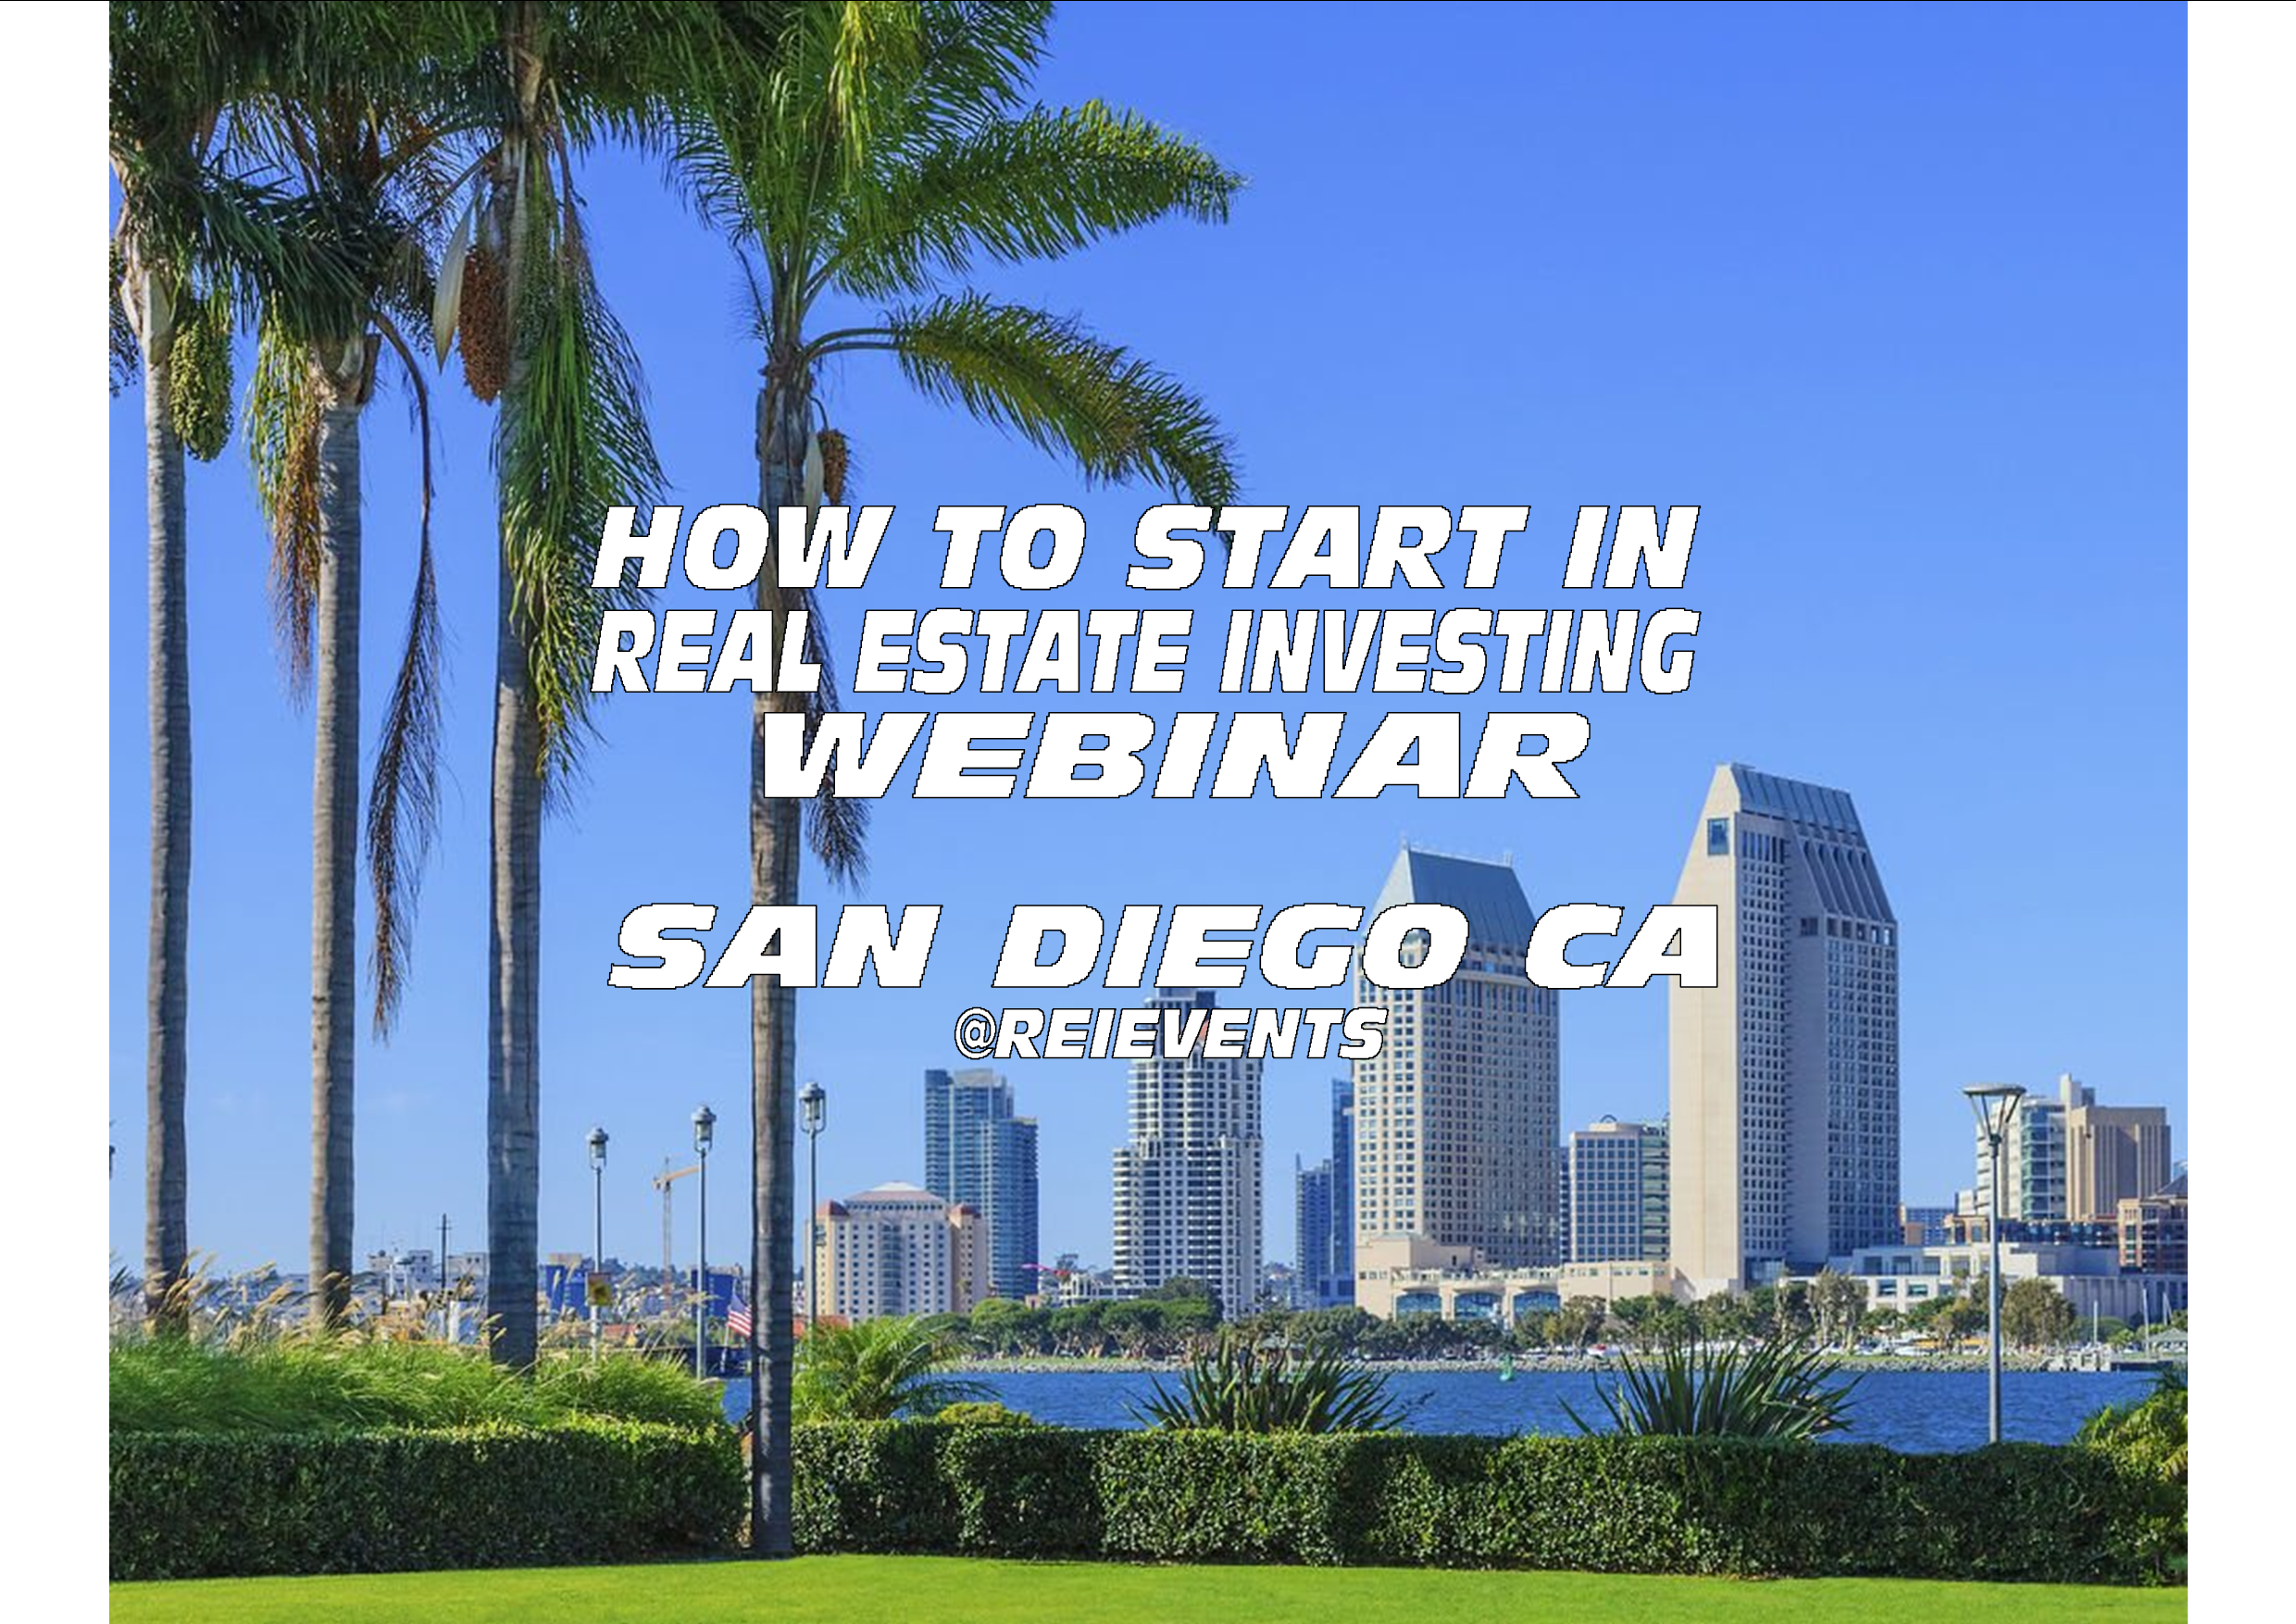 HOW TO START IN REAL ESTATE INVESTING - WEBINAR - San Diego, CA